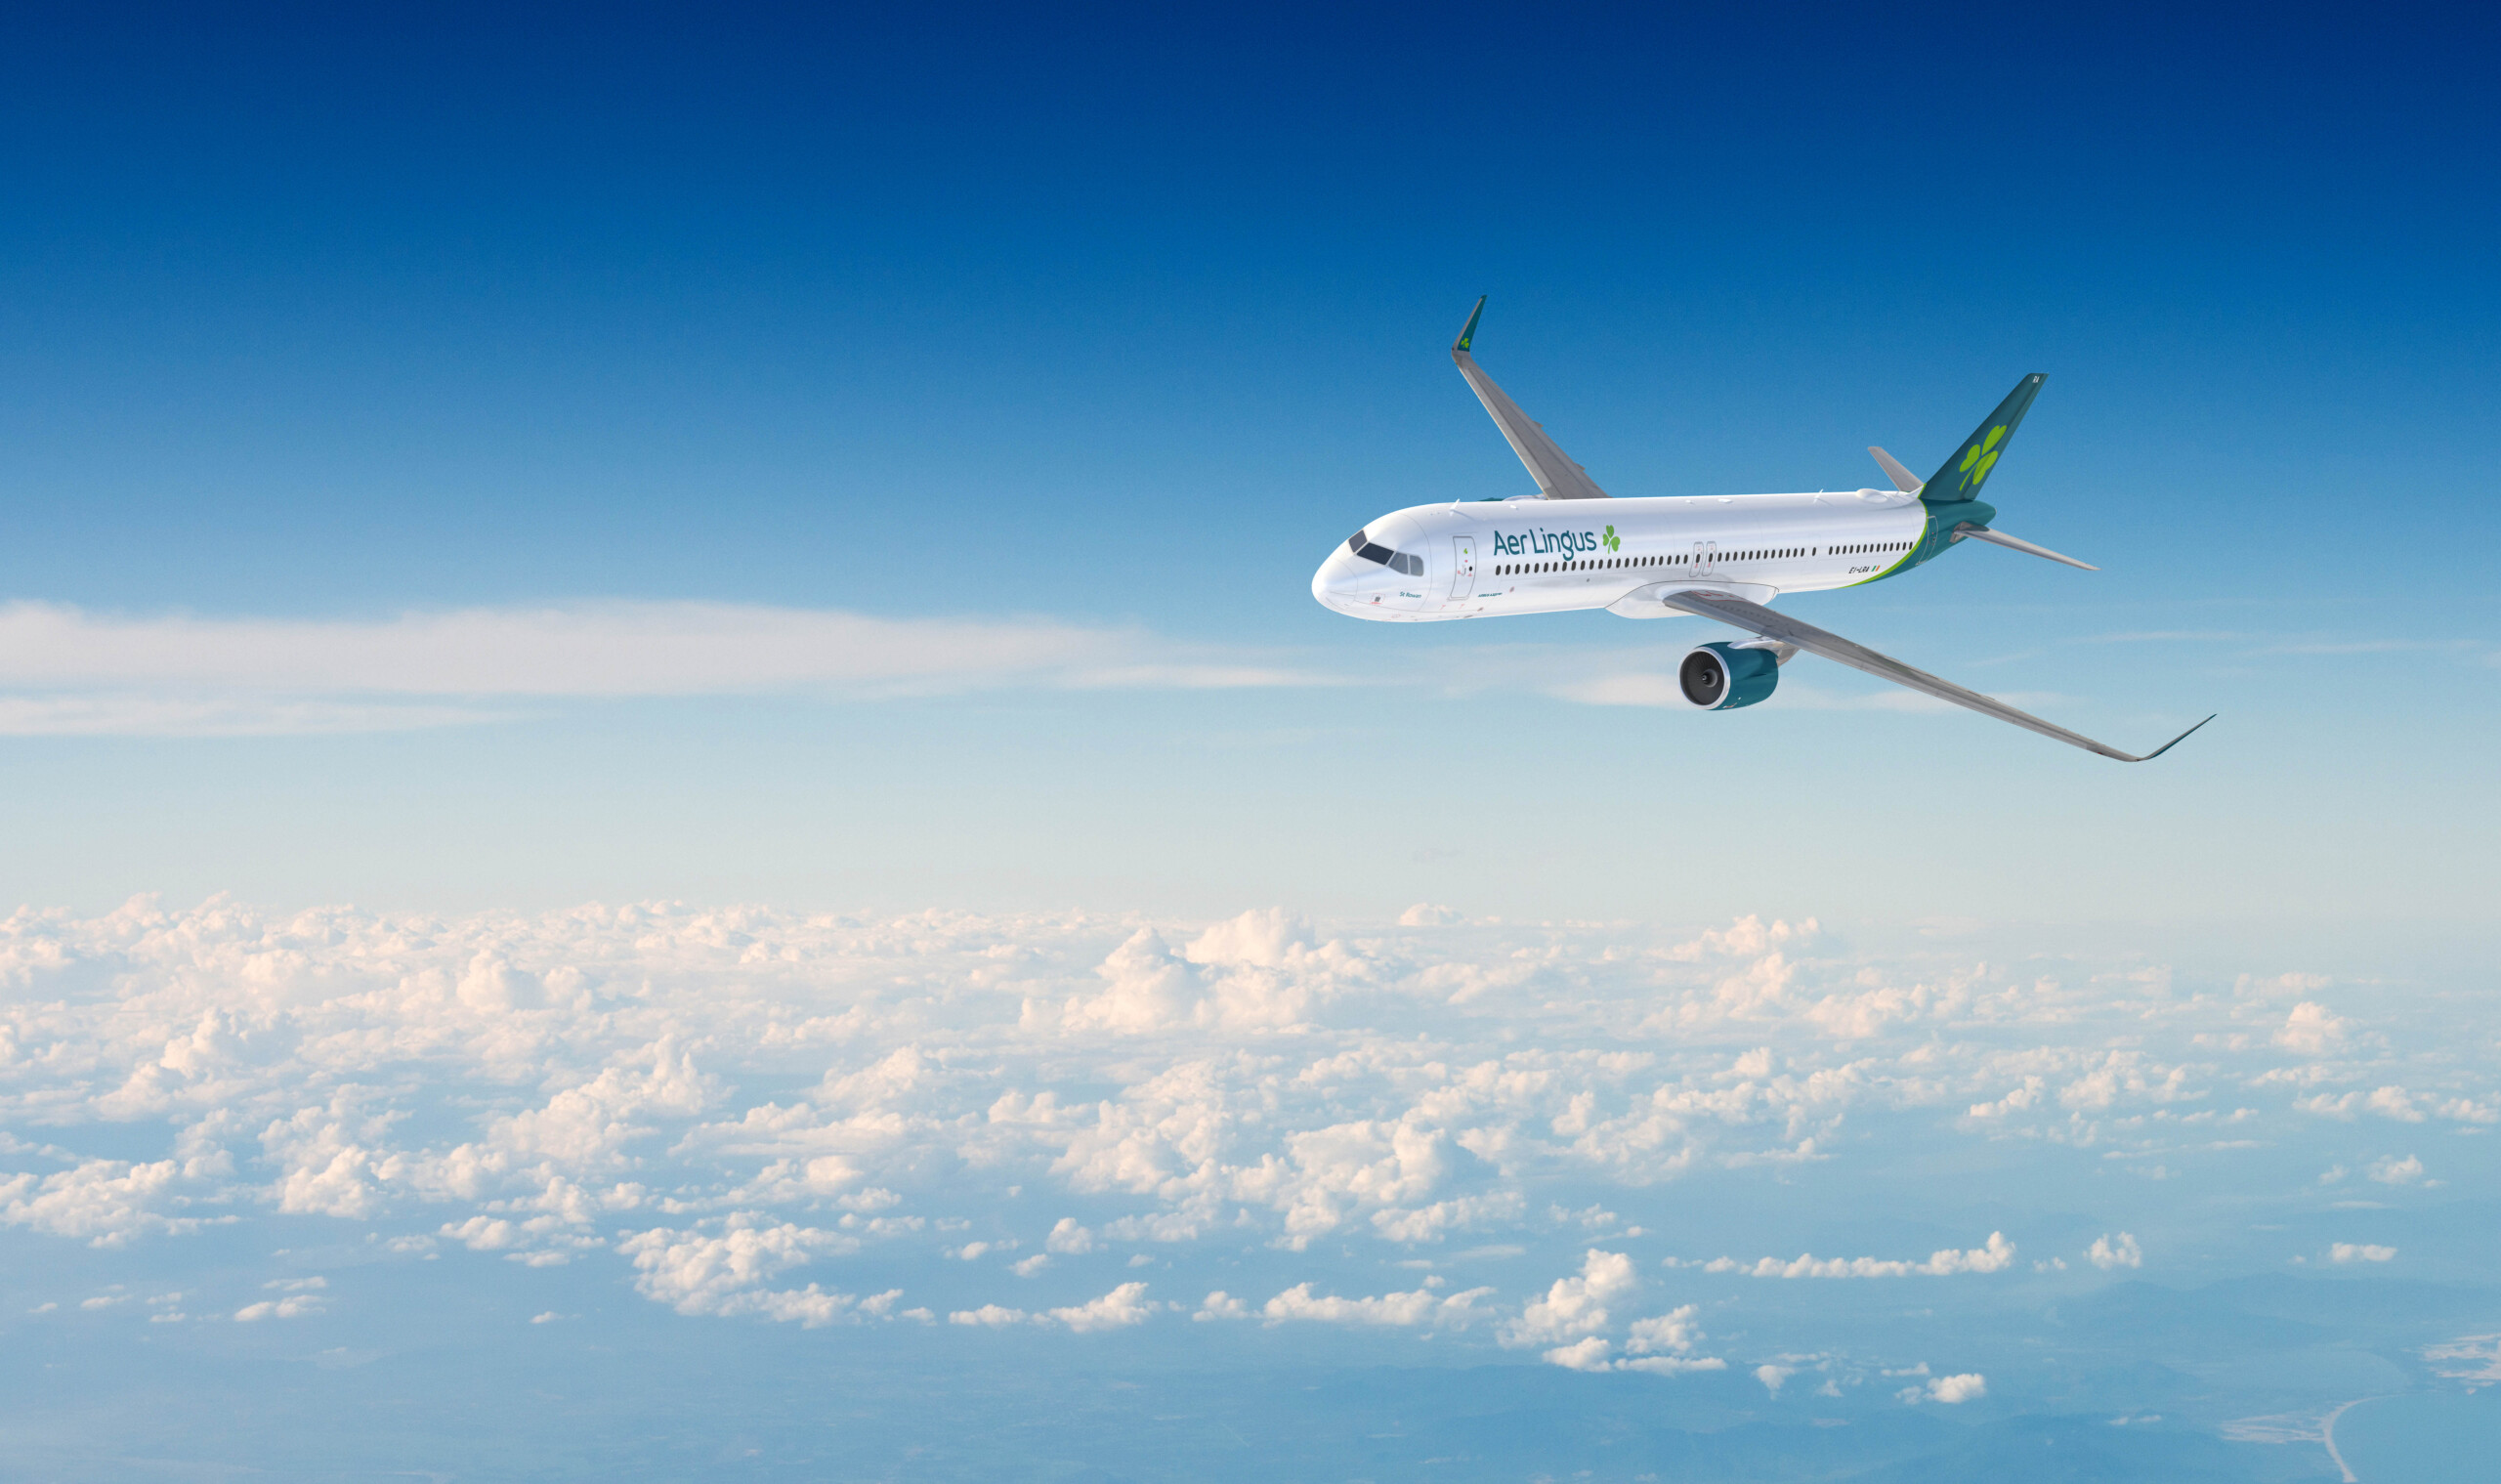 Aer Lingus Irelands flag carrier has published plans to reopen two US routes from its Dublin hub over the next month.